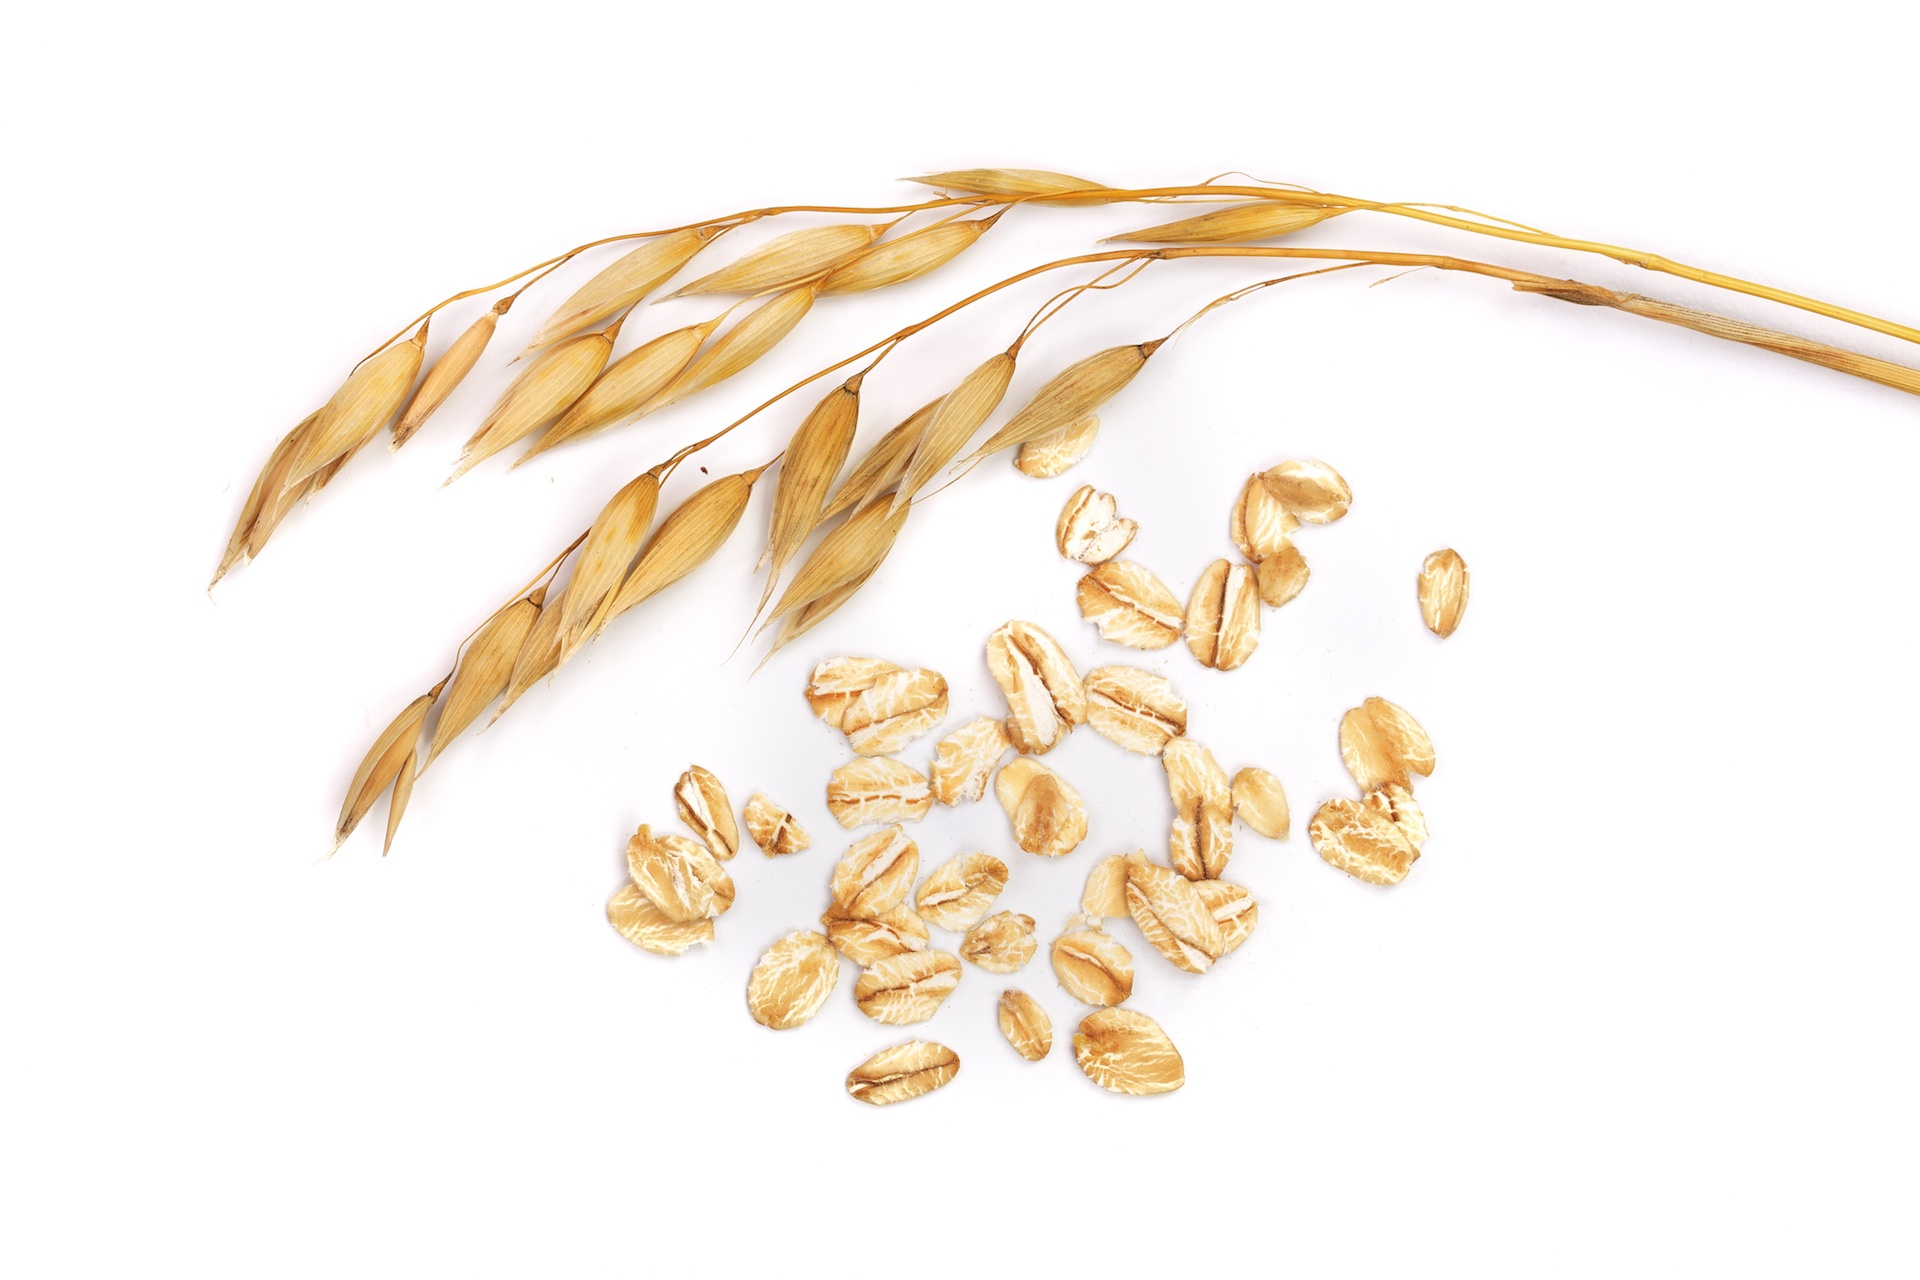 The Gluten Dilemma for Food Manufacturers | Whole Foods Magazine